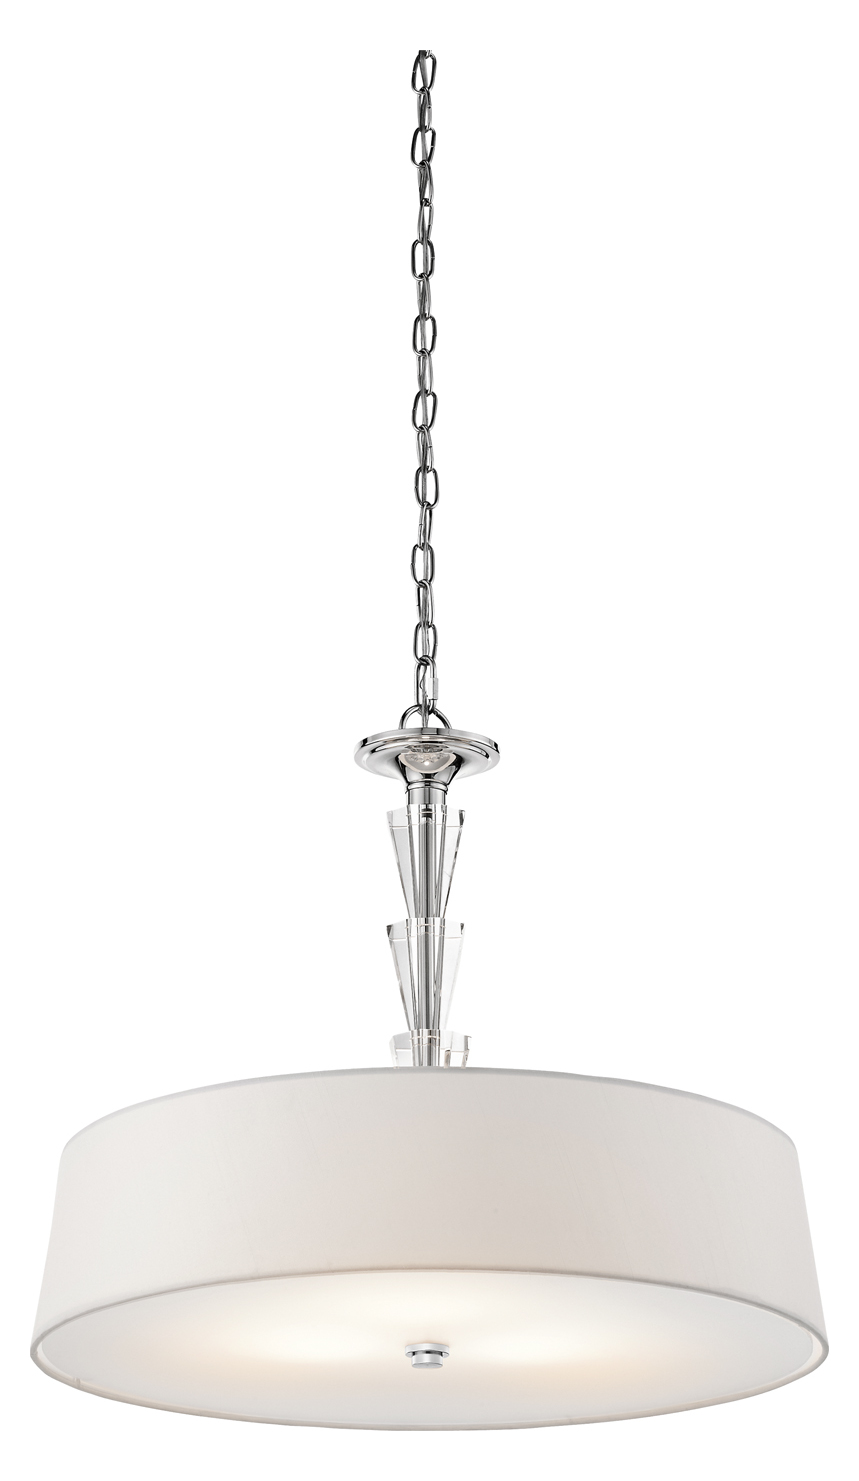 Kichler Chrome Crystal Persuasion 3-Bulb Indoor Pendant With Tapered Fabric Shade